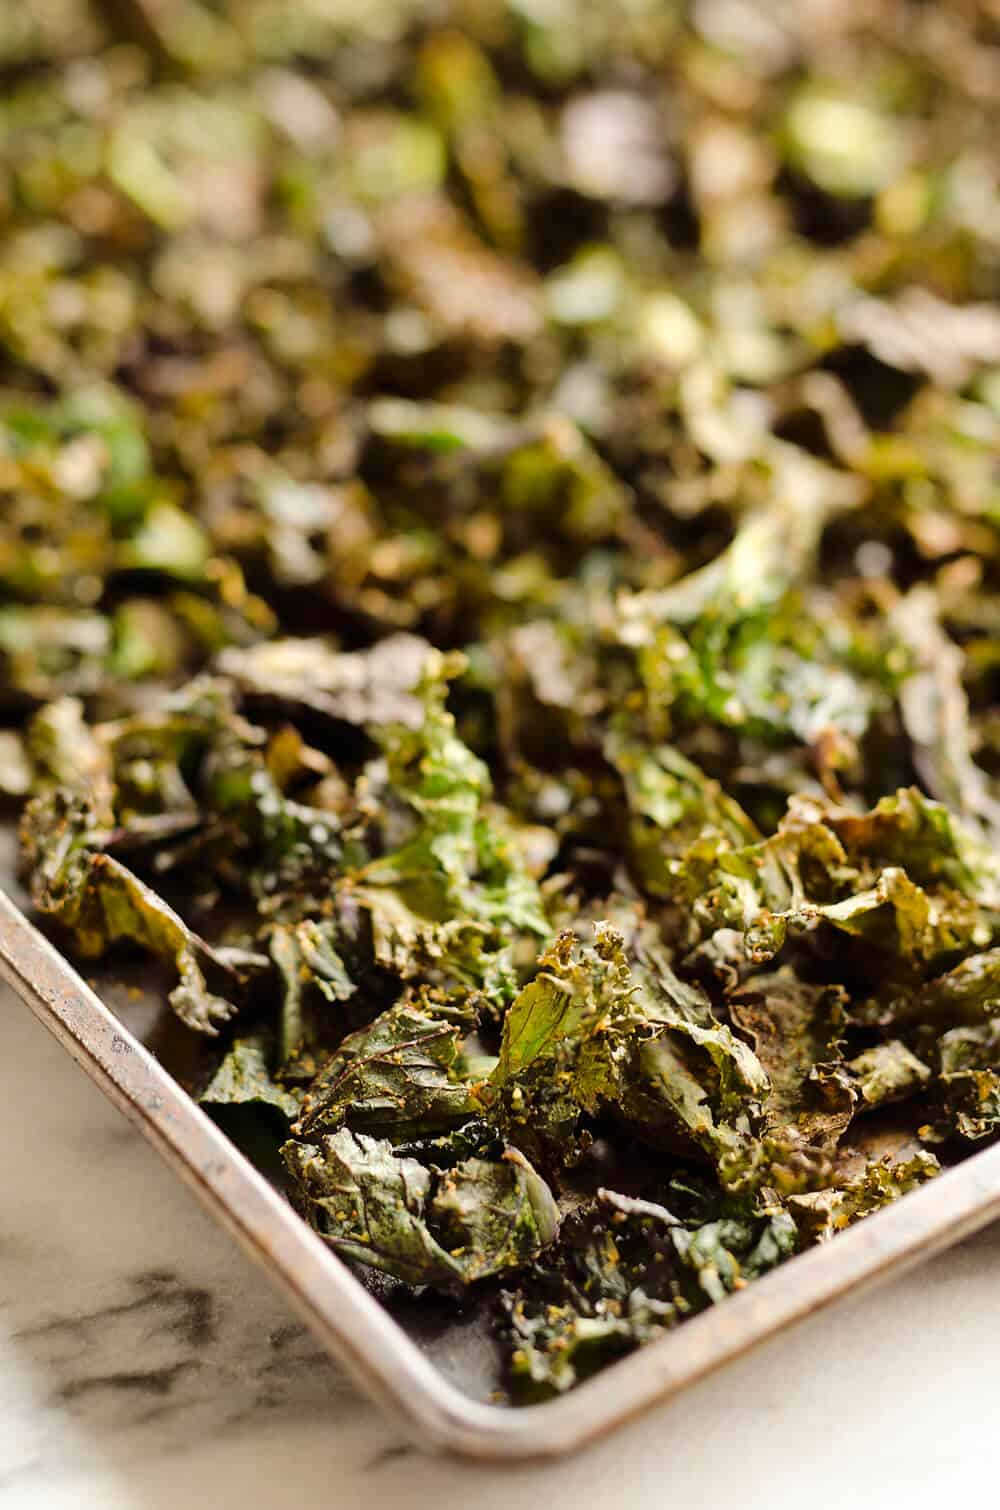 Spicy Kale Chips are beautifully crisp and loaded with bold chipotle flavor for a healthy 5 ingredient snack. They are perfect for the munchies or paired with your favorite sandwich on the side!